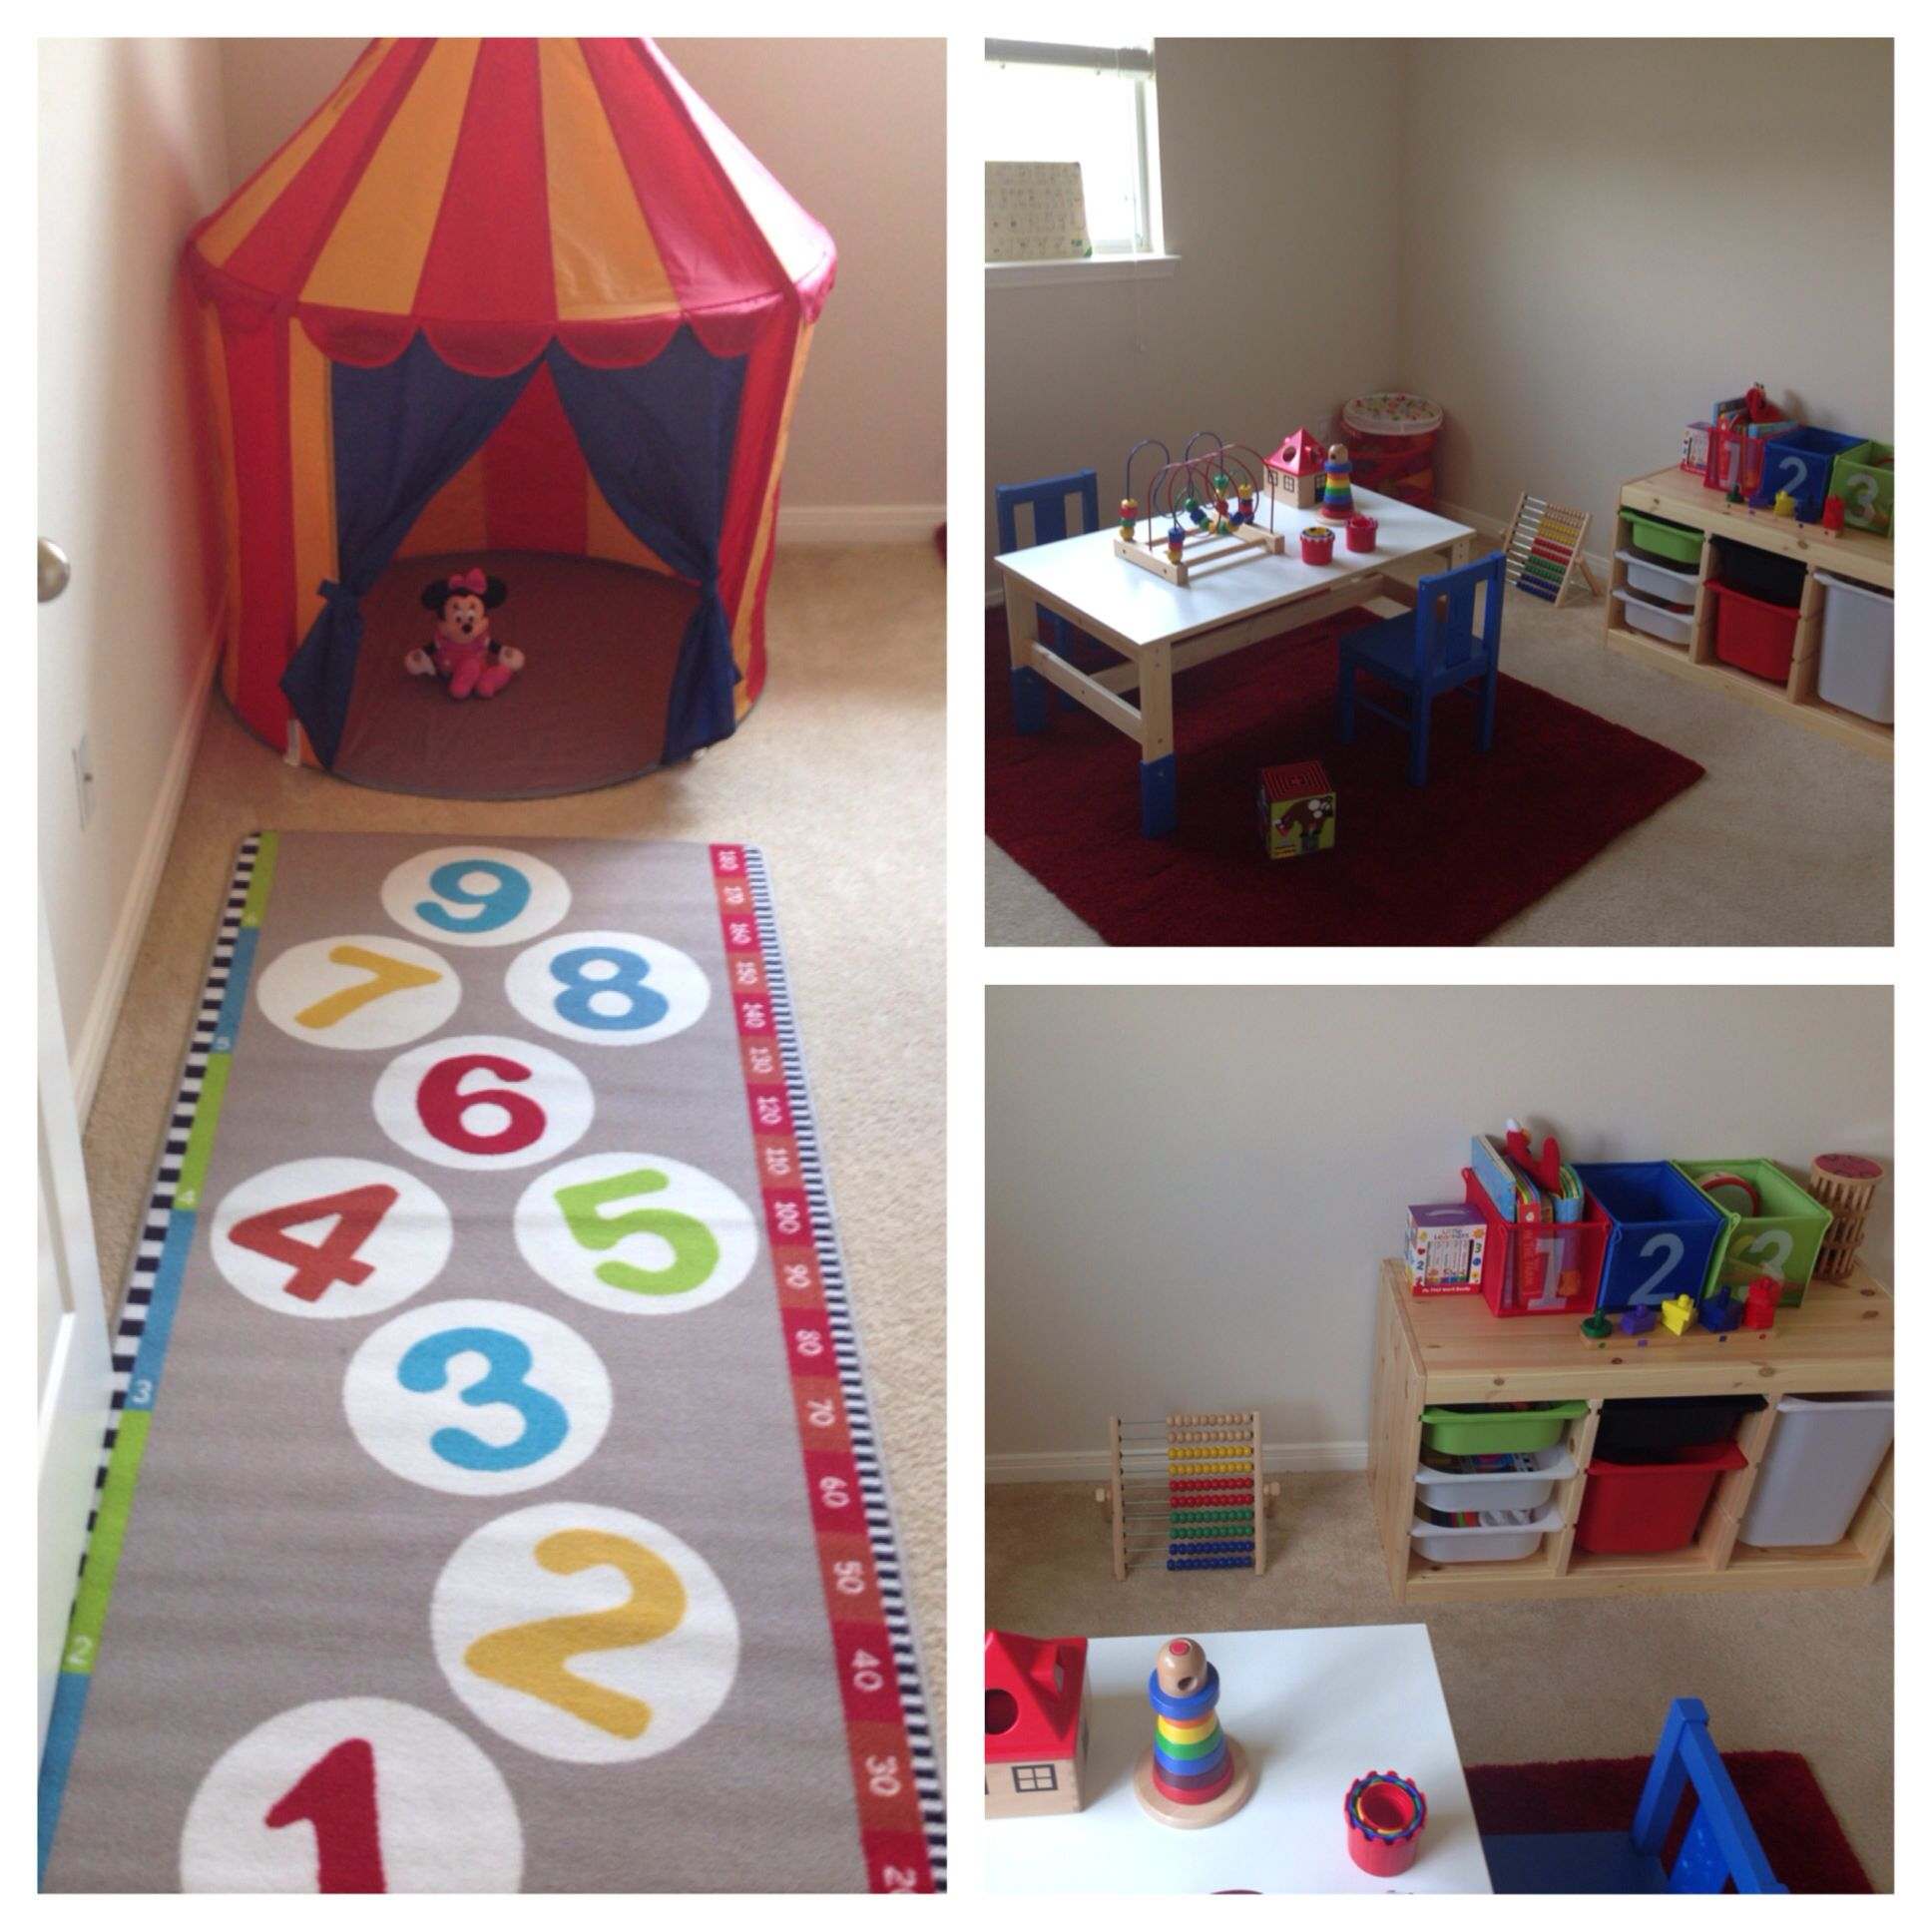 Montessori-inspired Playroom For Our 16-month Old. Still